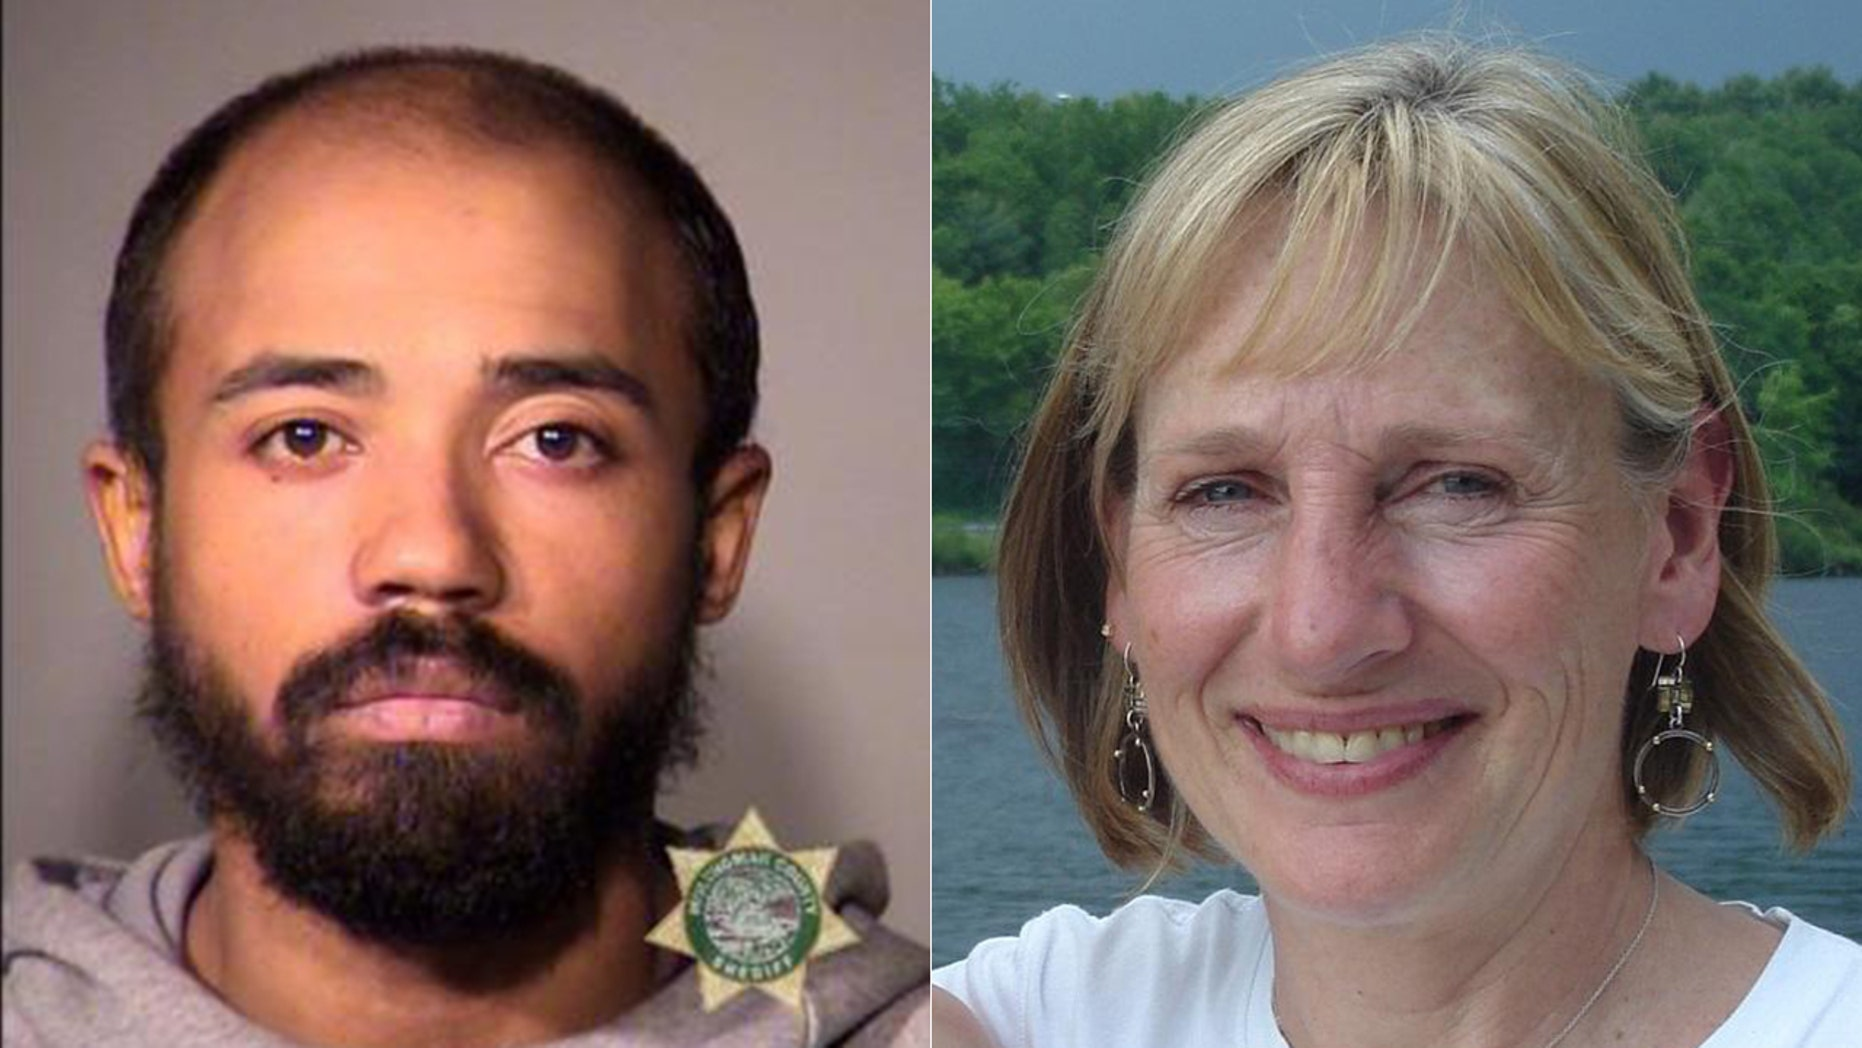 Mugshot for 28-year-old Christopher Williamson (l.) charged Friday with killing Portland public defender Nancy Bergeson, 57, (r.) a decade ago.